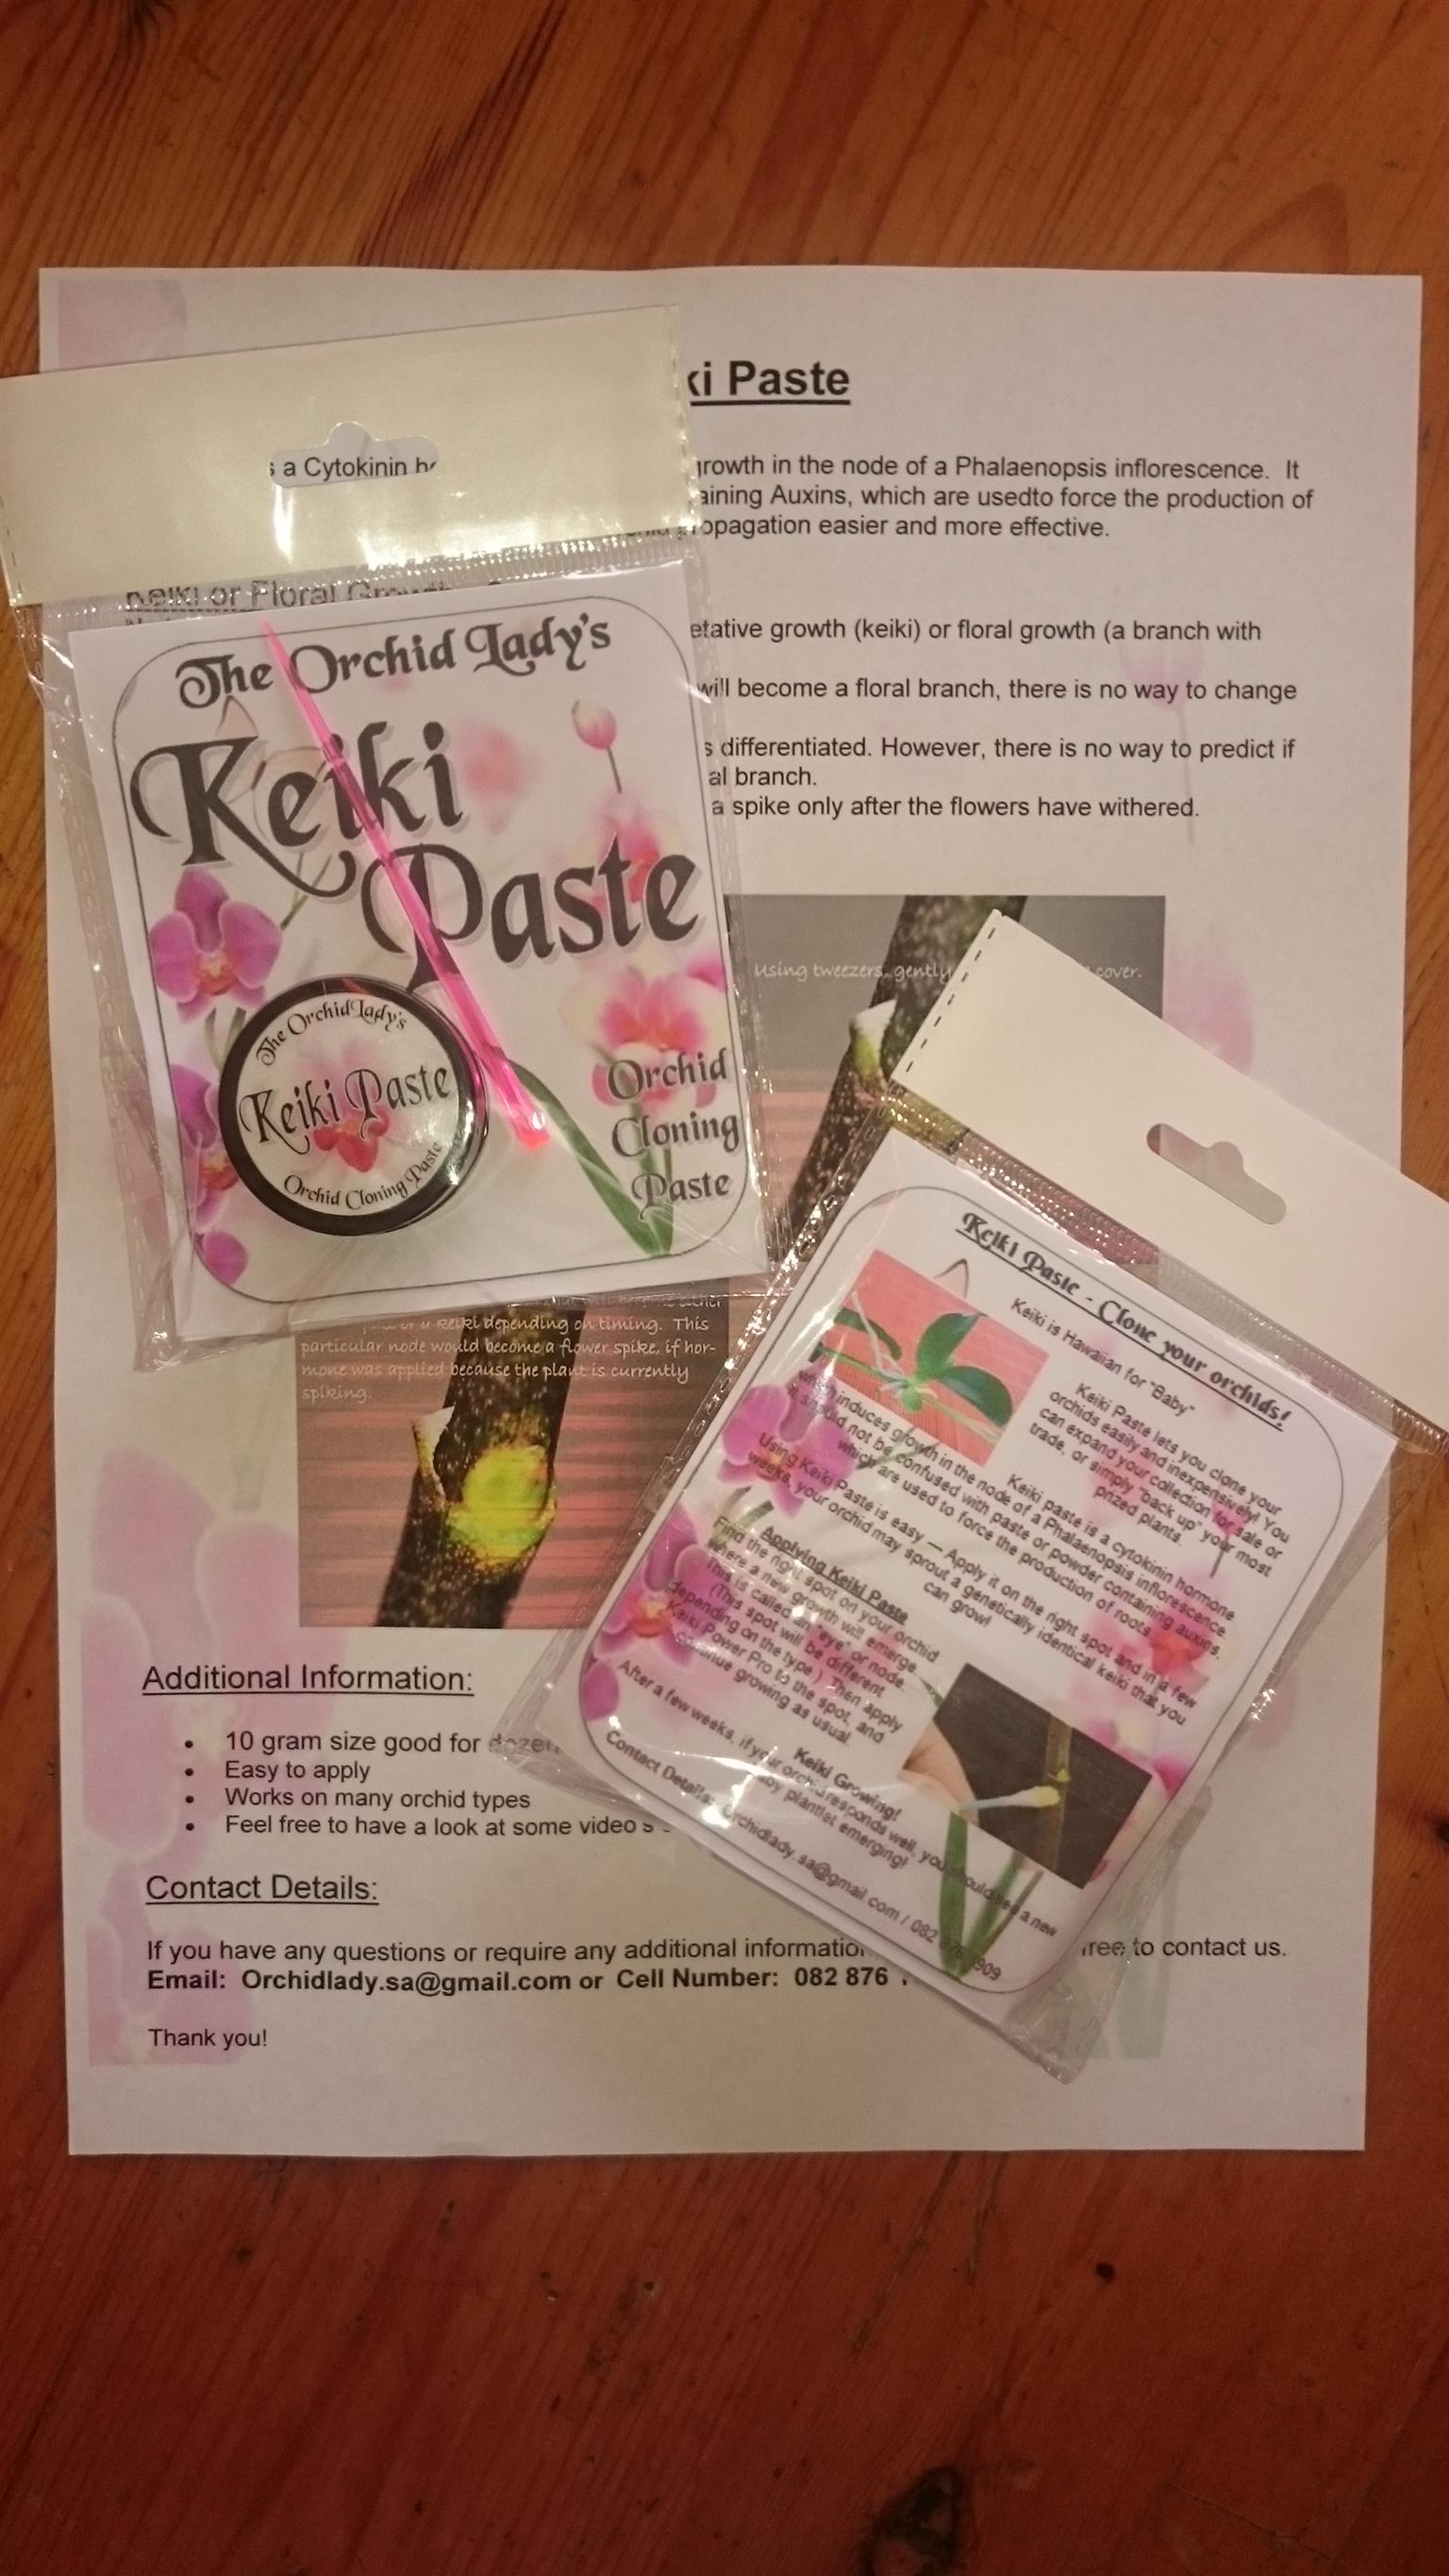 Keiki Paste For Orchids